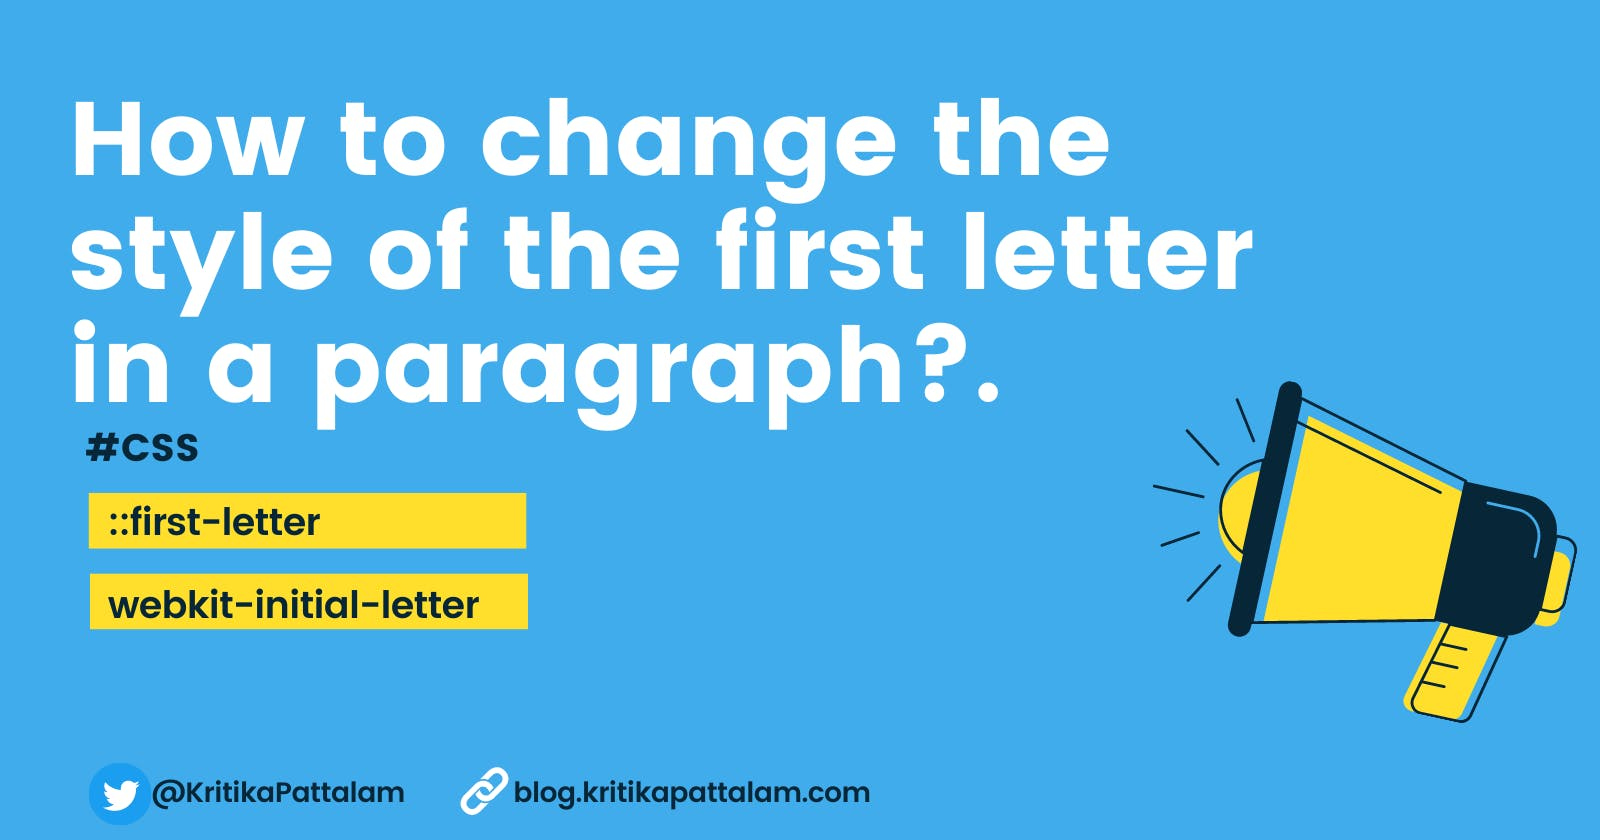 Drop CAP effect / Changing the style of the first letter in a paragraph using CSS.